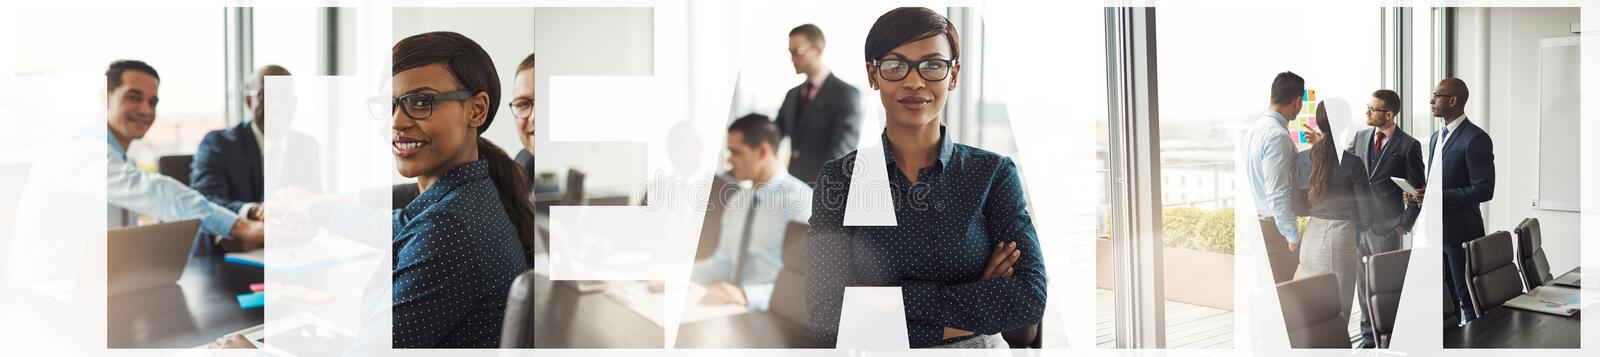 Collage of a diverse team of businesspeople working together stock photography